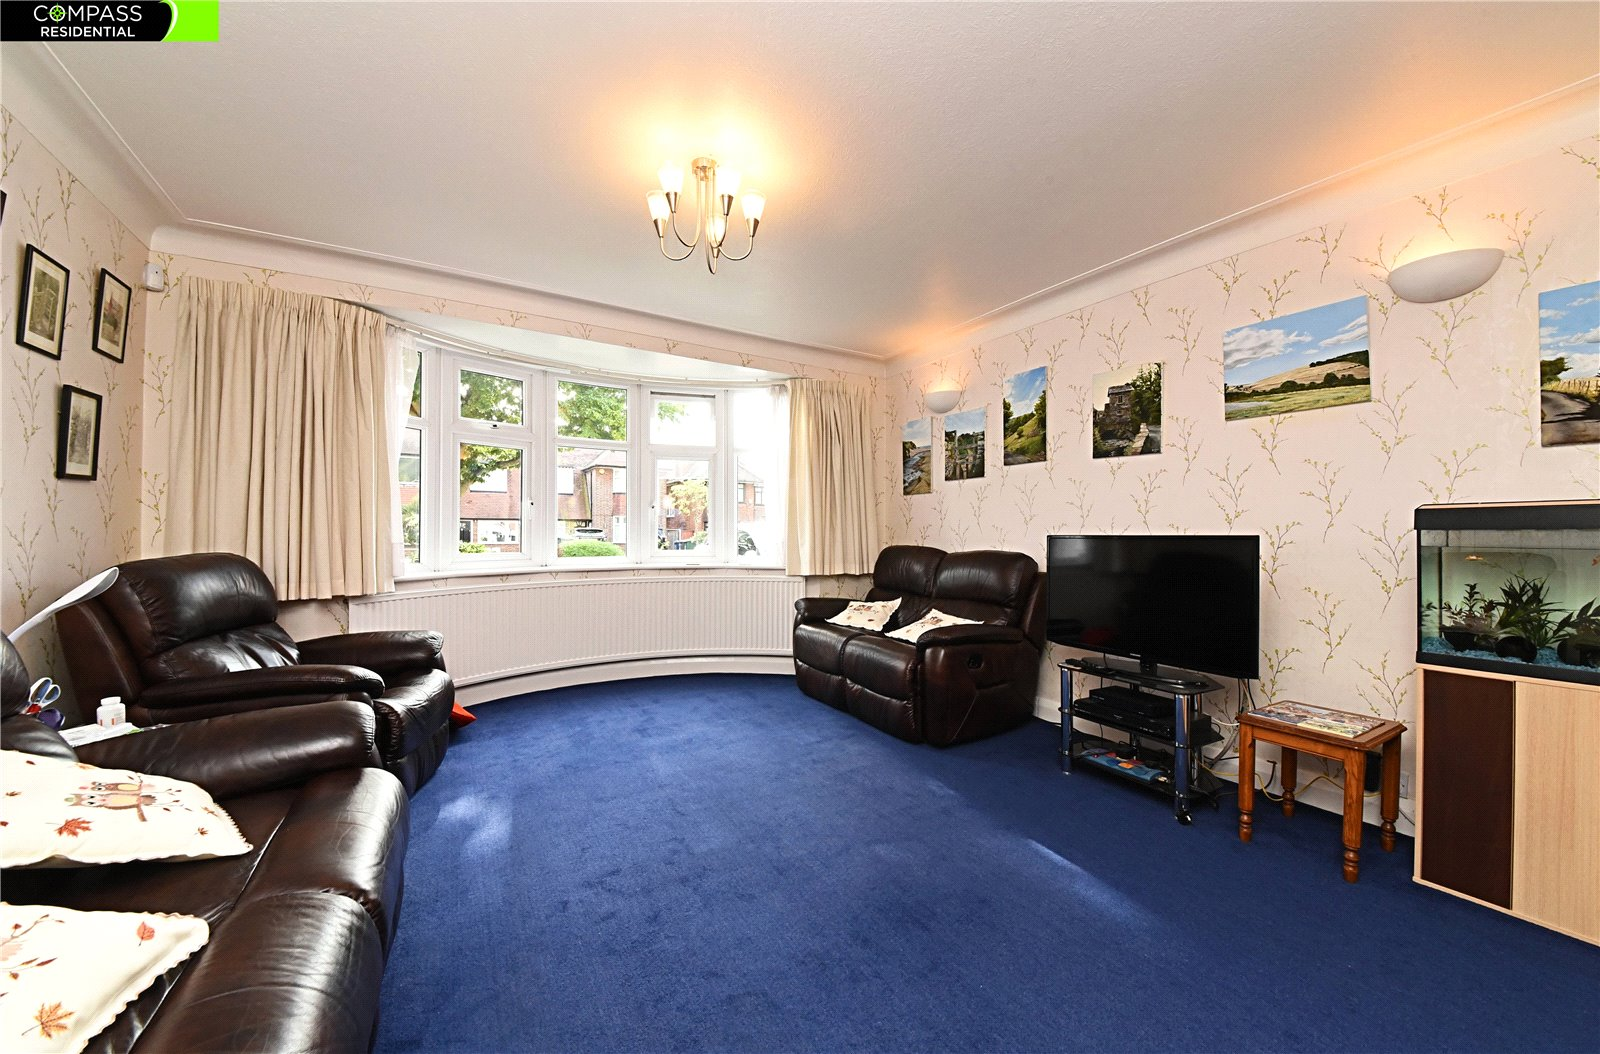 3 bed house for sale in Totteridge, N20 8HL  - Property Image 6